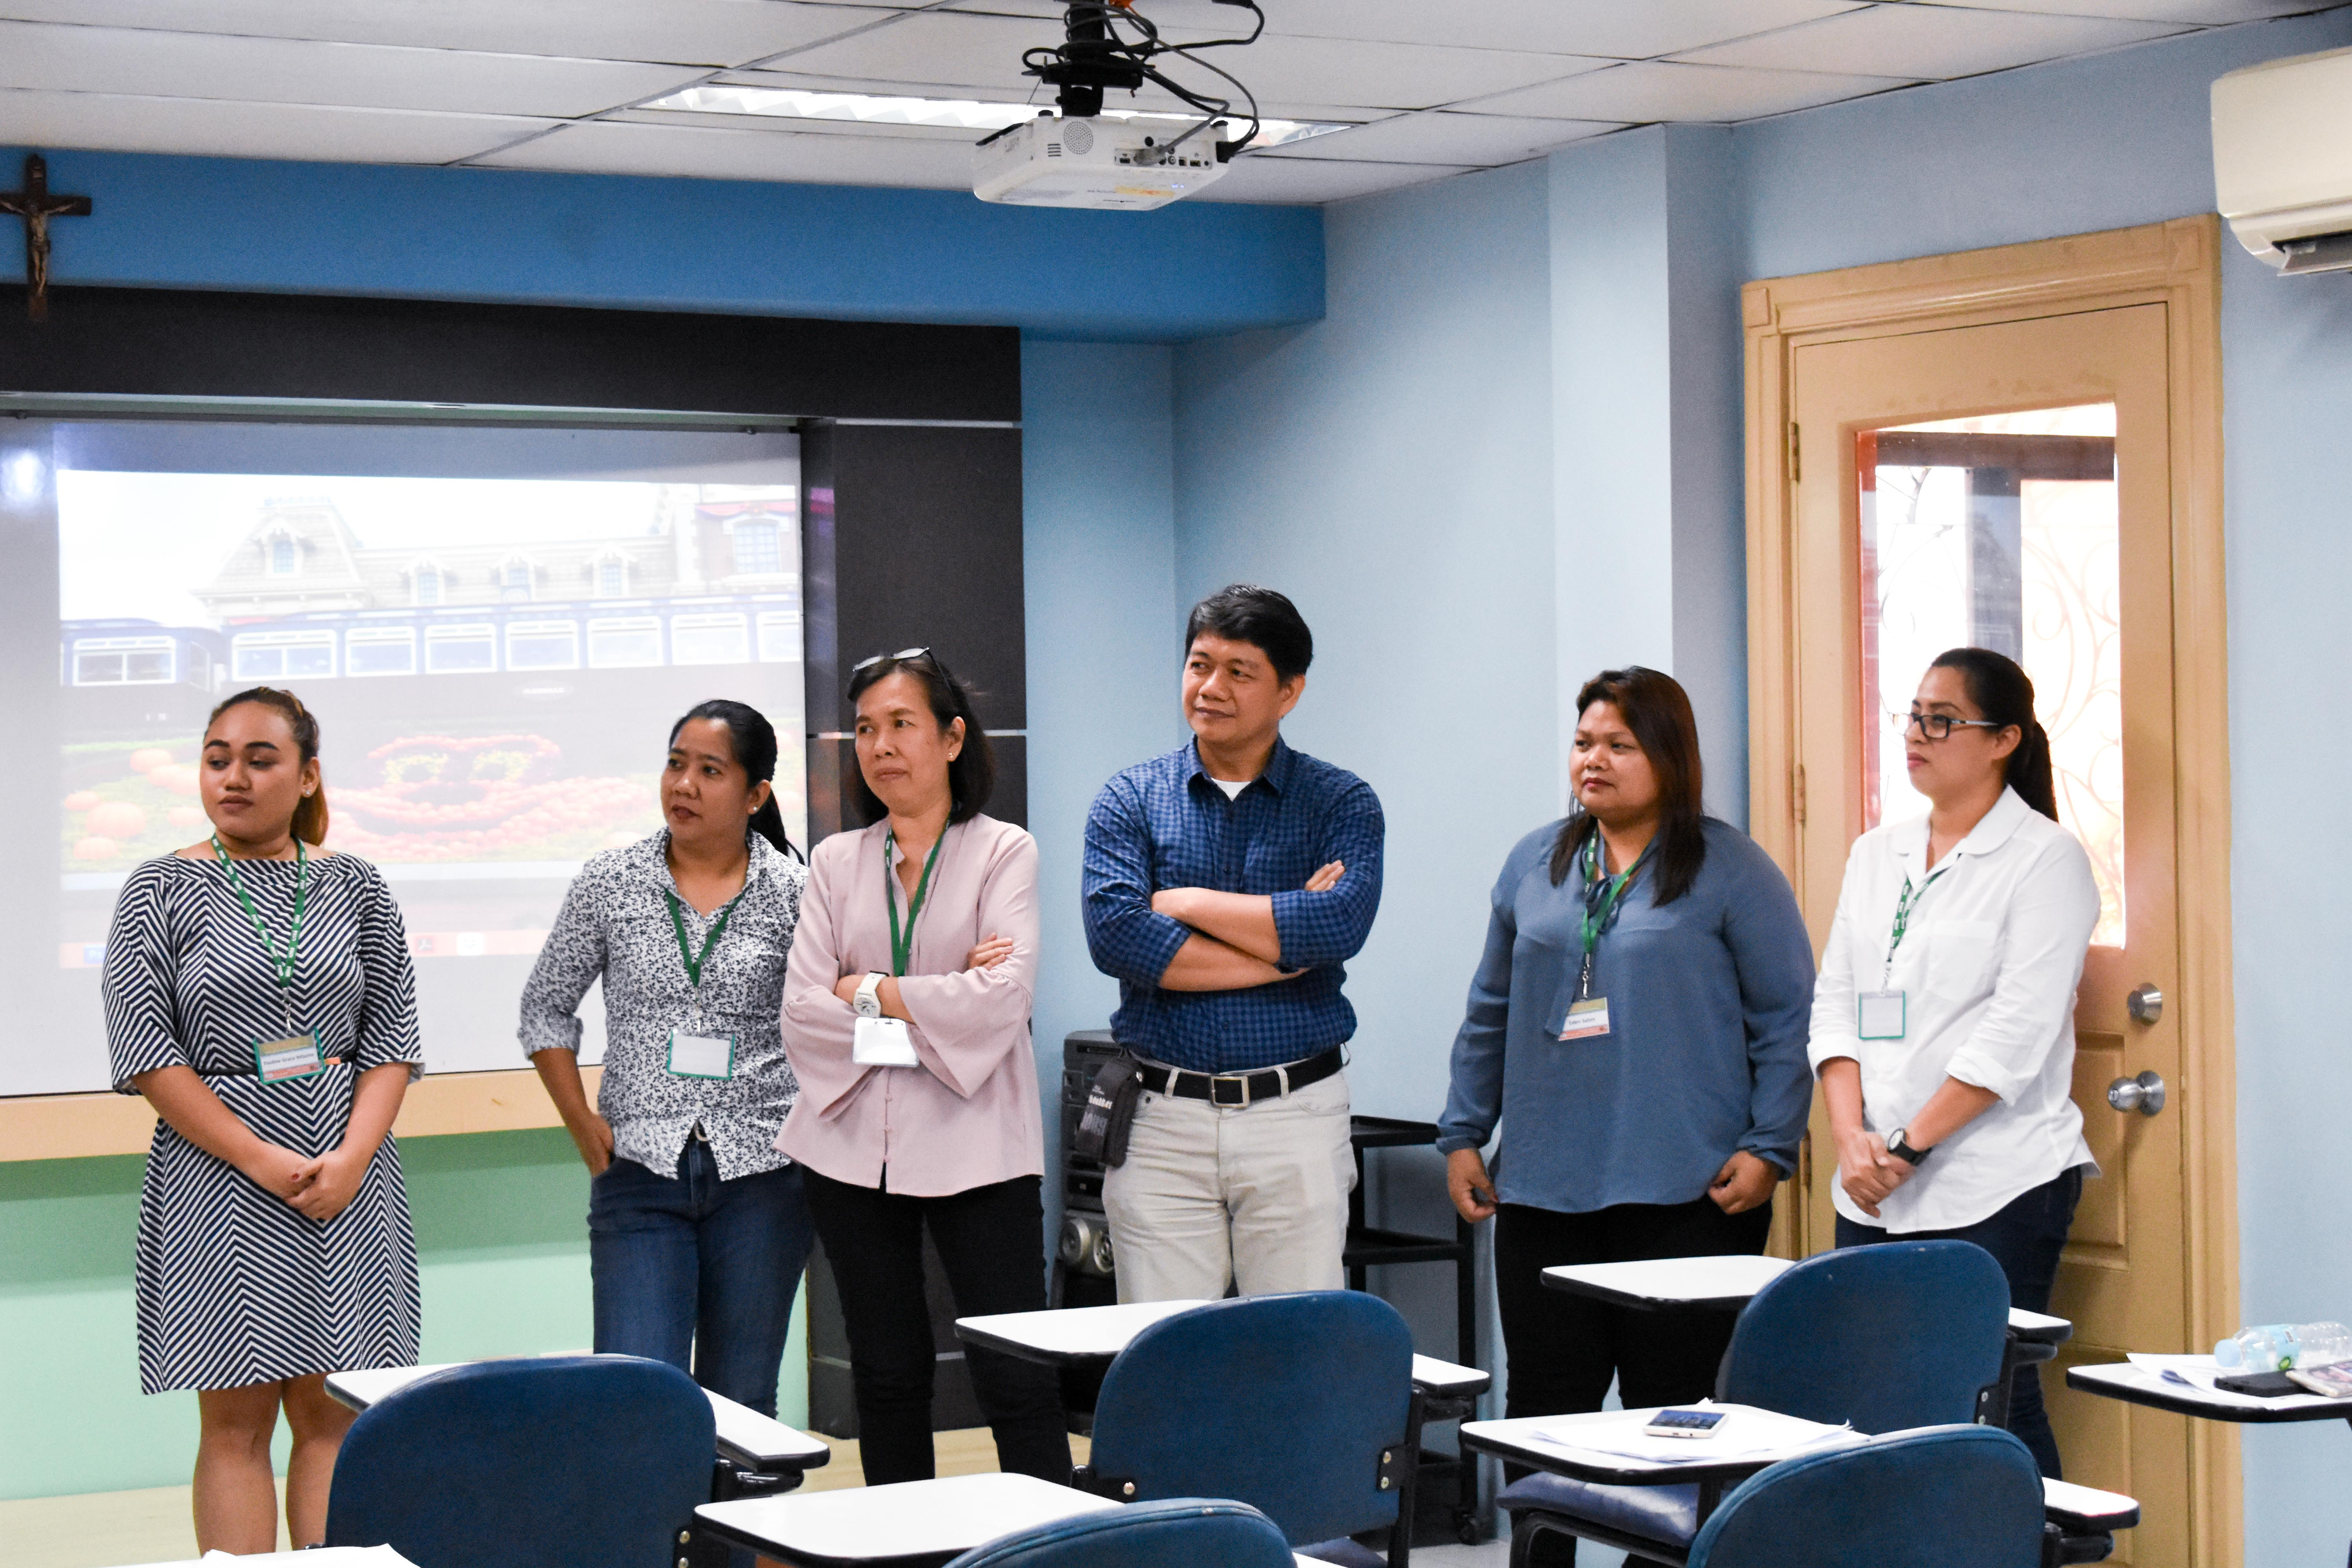 UPOU FEd members participate in a Q & A Session after the panel presentation. Presenters include (L–R) Ms. Pauline Grace R. Milante, Ms. Rubielita Parcon, Ms. Rhonna Marie R. Vereña, Dr. Ricardo T. Bagarinao, Ms. Eden M. Salon, and Ms. Lorelee R. Mones.